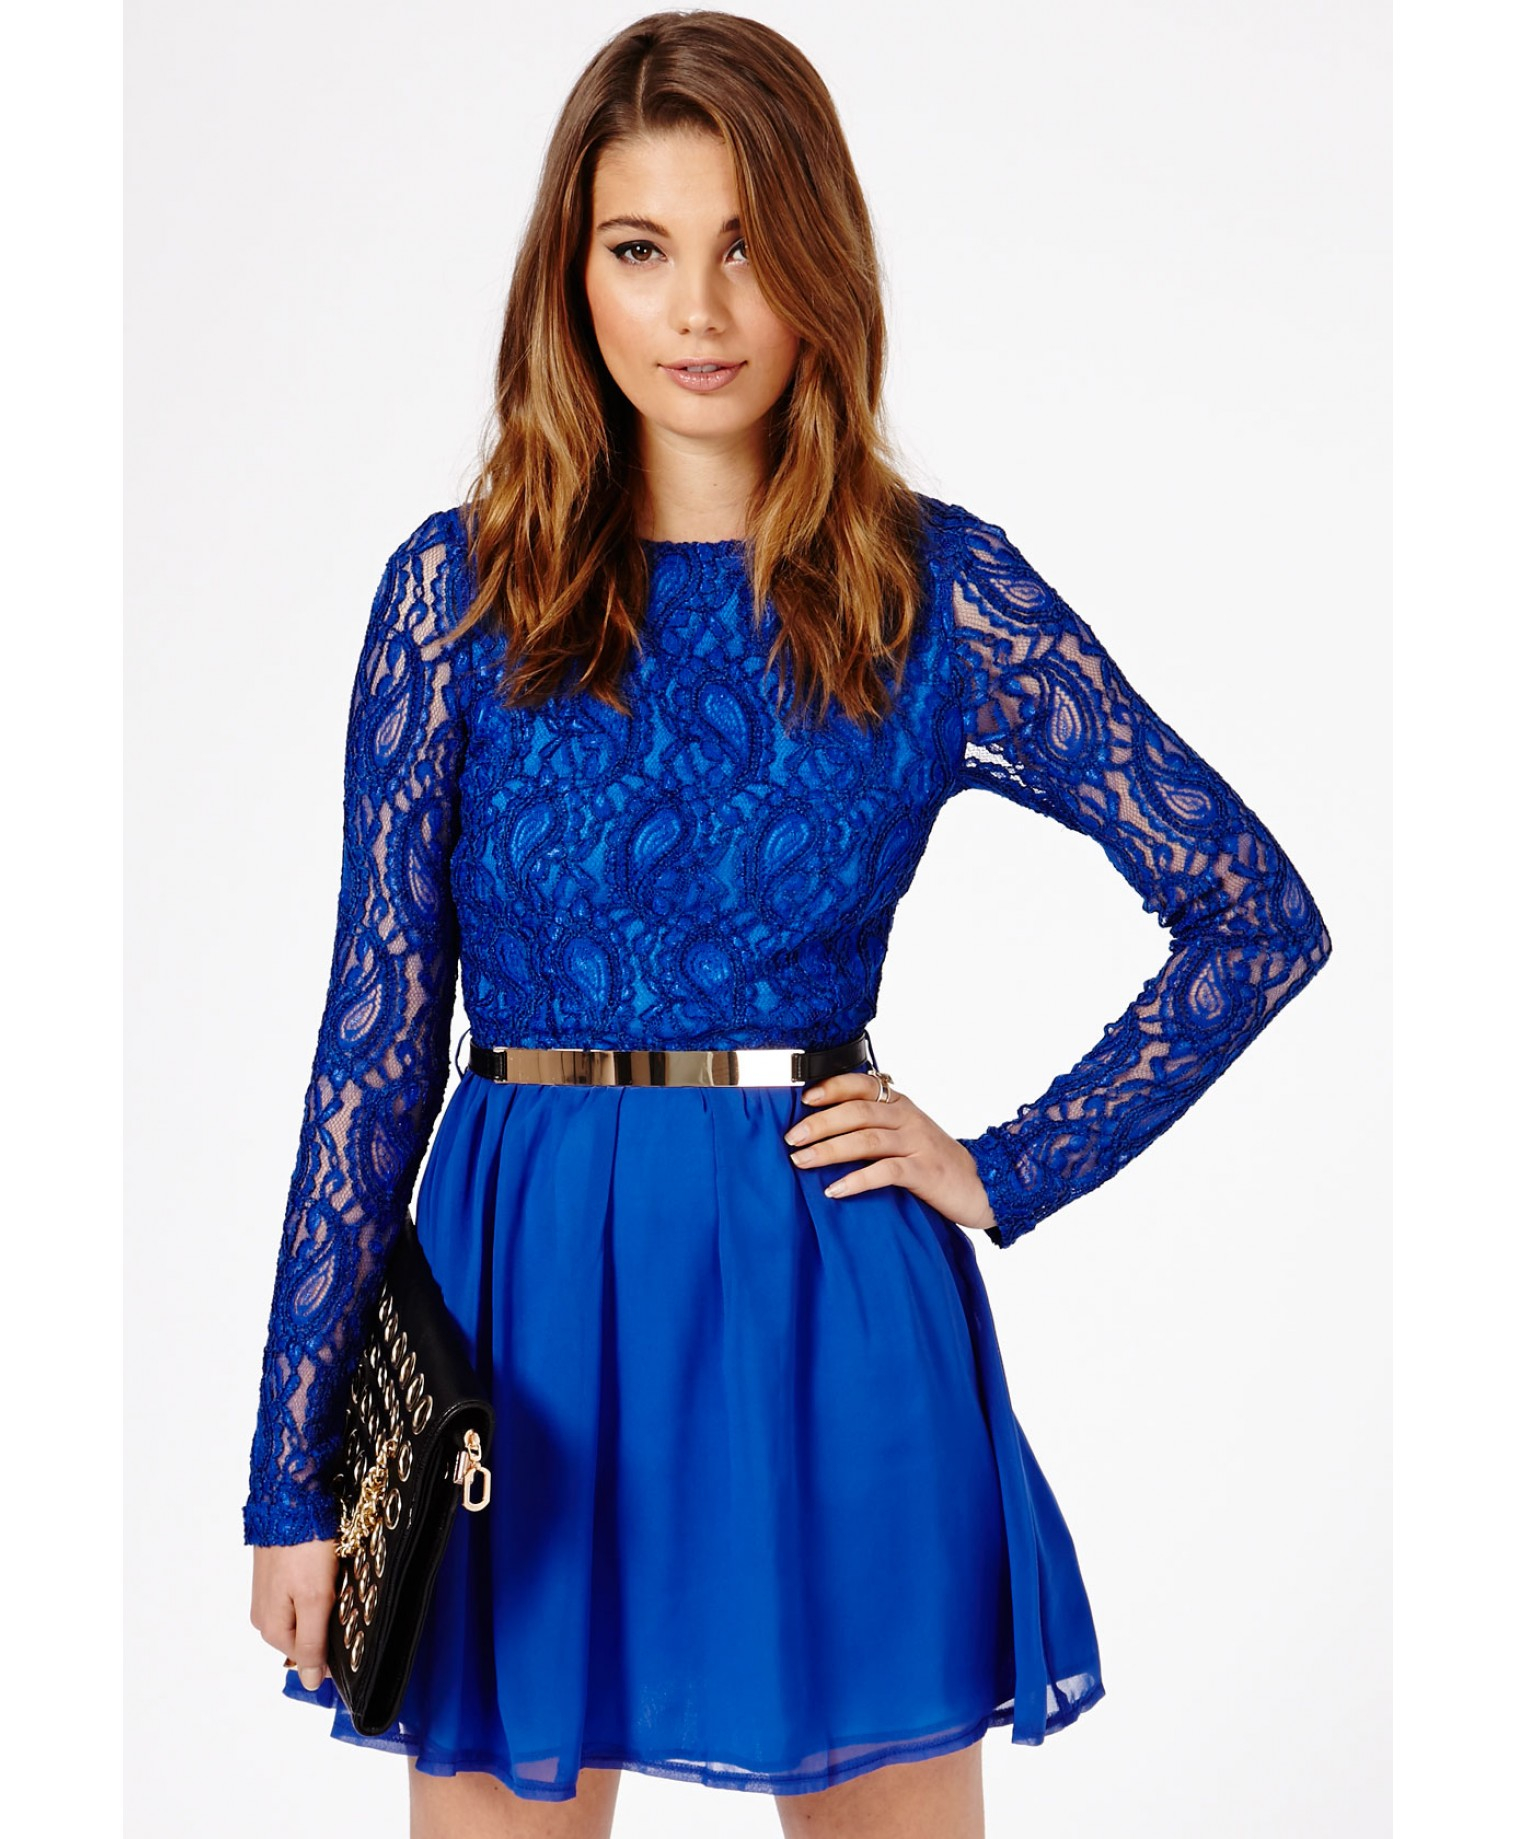 Missguided Minelli Contrast Lace Skater Dress in Cobalt Blue in ...